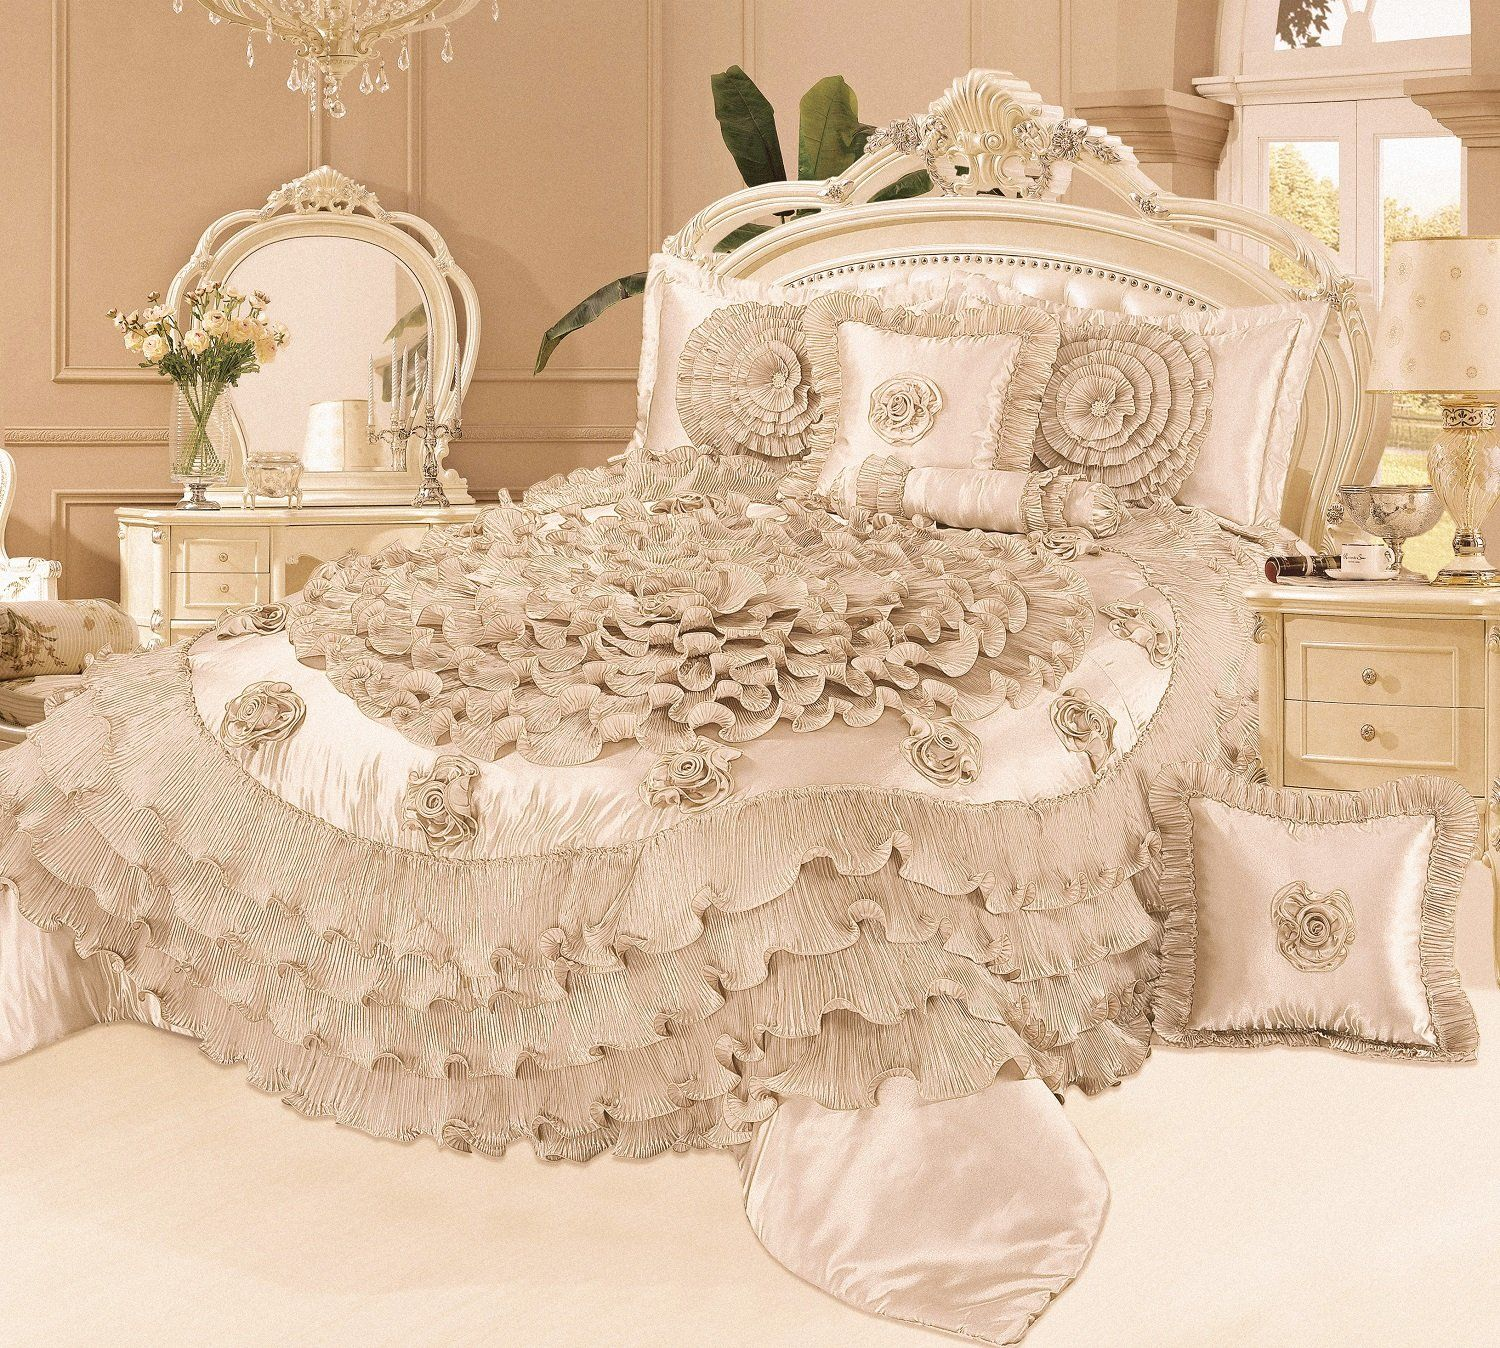 Tache 6 Piece Frosted Fields Faux Satin Luxury Comforter Set Queen Luxury Comforter Sets Comforter Sets Bed Spreads